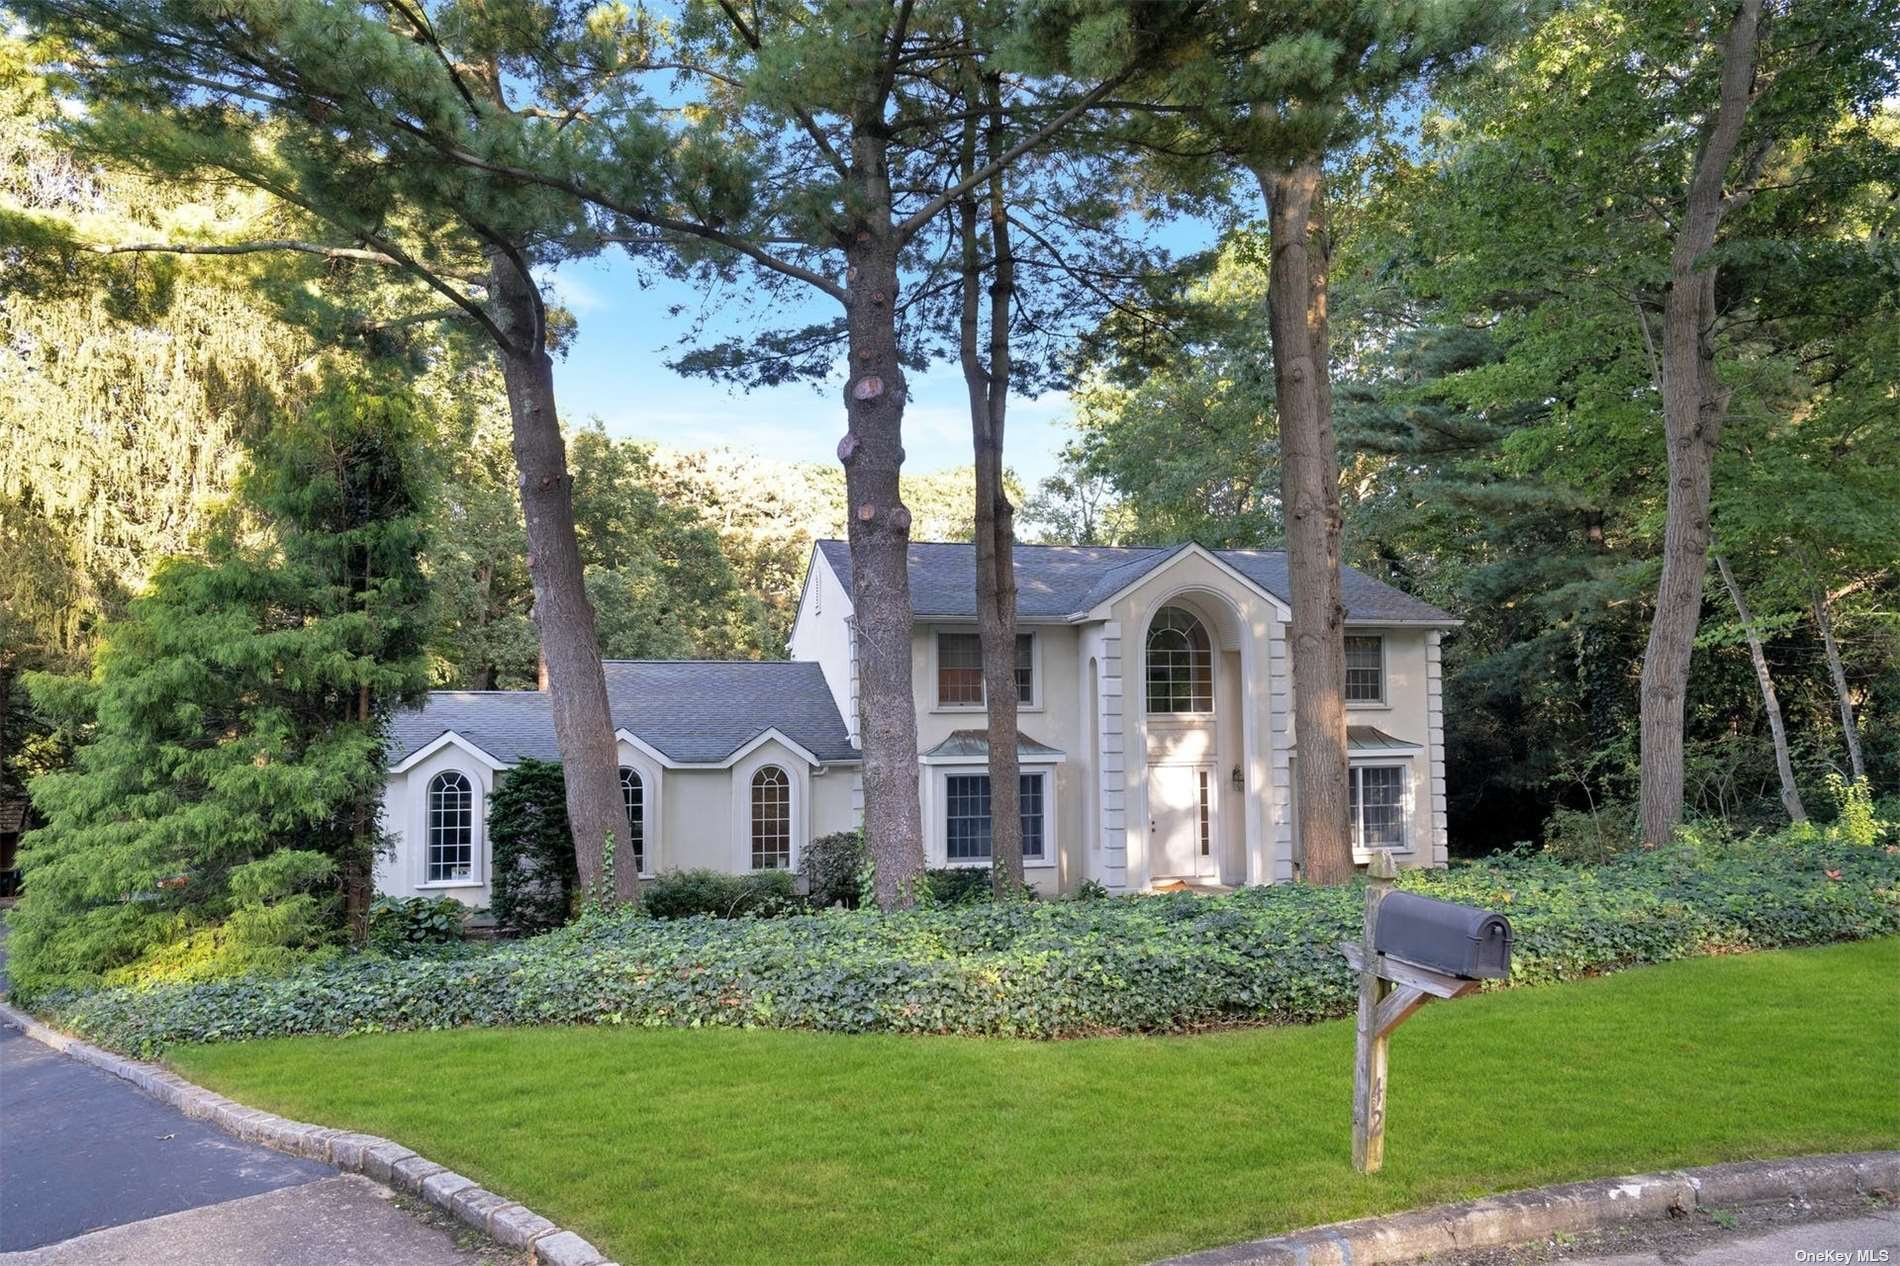 Grand Center Hall Colonial on quiet Cul-De-Sac in the heart of Village on the Hill. Impressive curb appeal! Large center hall with 2 closets and half bath. Open great room to your right flows for easy entertaining.. Kitchen has large breakfast area and serving station to the formal dining room. Nice size BR on first floor with separate full bath. Primary BR was made larger by adding 4th bedroom as a sitting room. En-Suite bath and Huge Walk-In-Closet complete the dream! All Bedrooms good sizes! The basement is beautiful, brand new and ready to go. Huge storage room  Nice builders acre. In-ground pool As-Is. 200 Amp, Boiler 20 yrs, New Hot Water Tank, Anderson Windows, 2 new CAC units.